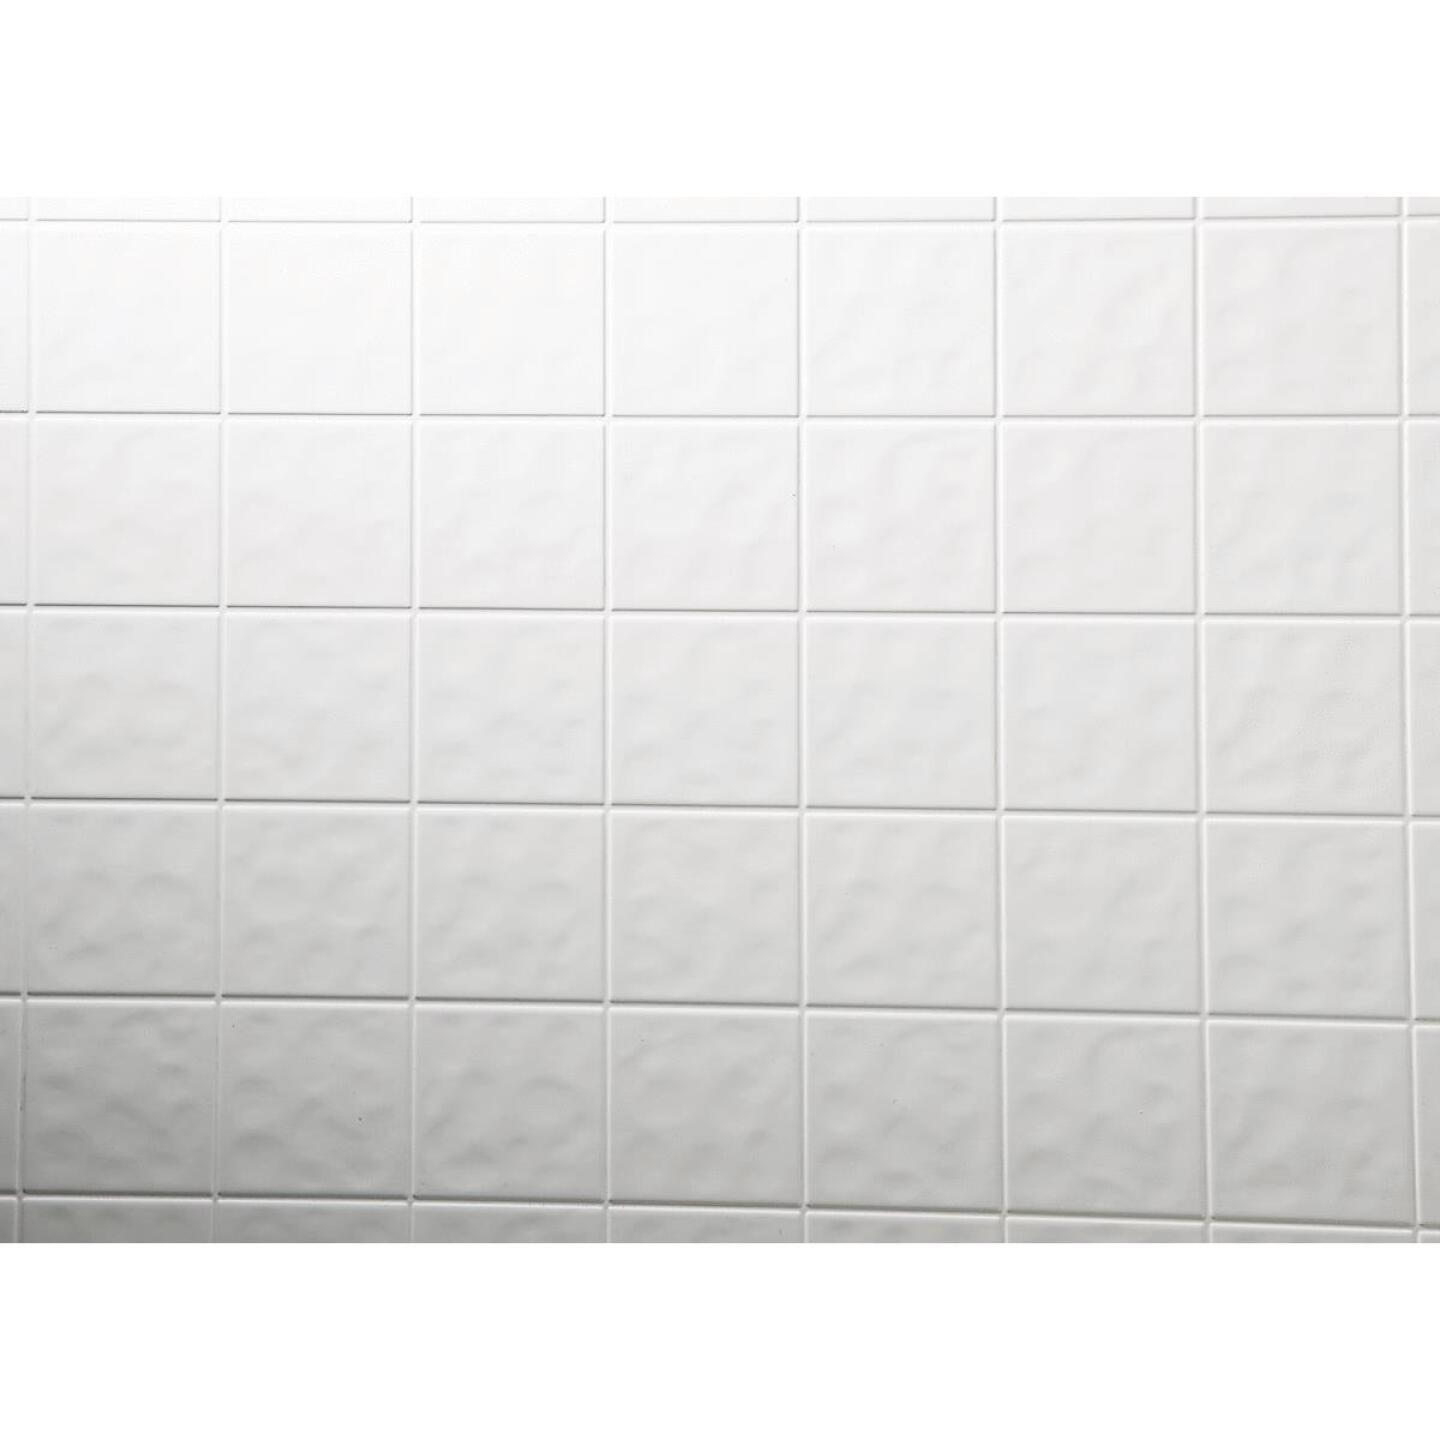 DPI AquaTile 4 Ft. x 8 Ft. x 1/8 In. White Tileboard Wall Tile Image 1